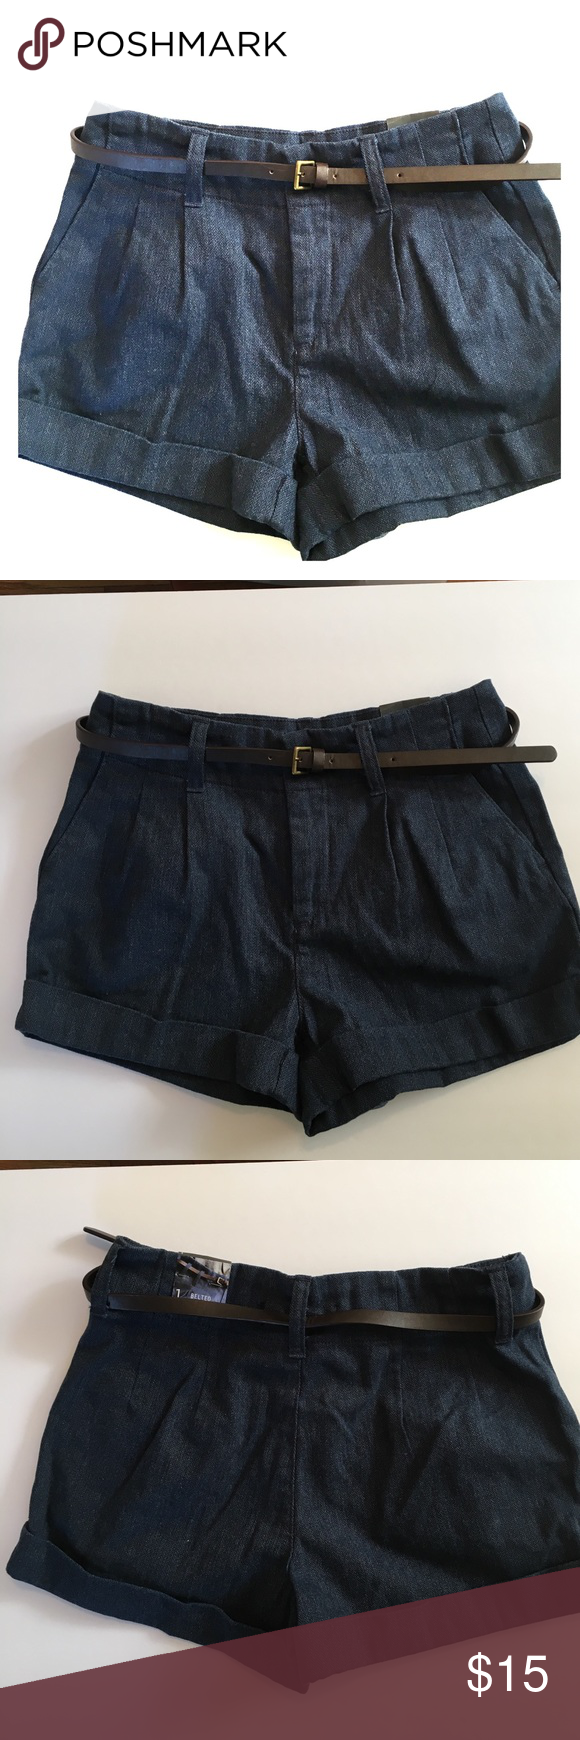 NWT Bullhead Black High Waisted Dark Blue Shorts New with tag, Bullhead Black high waisted shorts are in a dark blue tweed-like fabric. The shorts are cuffed & come with a brown belt. Size 1. Fabric is 74% cotton & 26% polyester. Bullhead Shorts